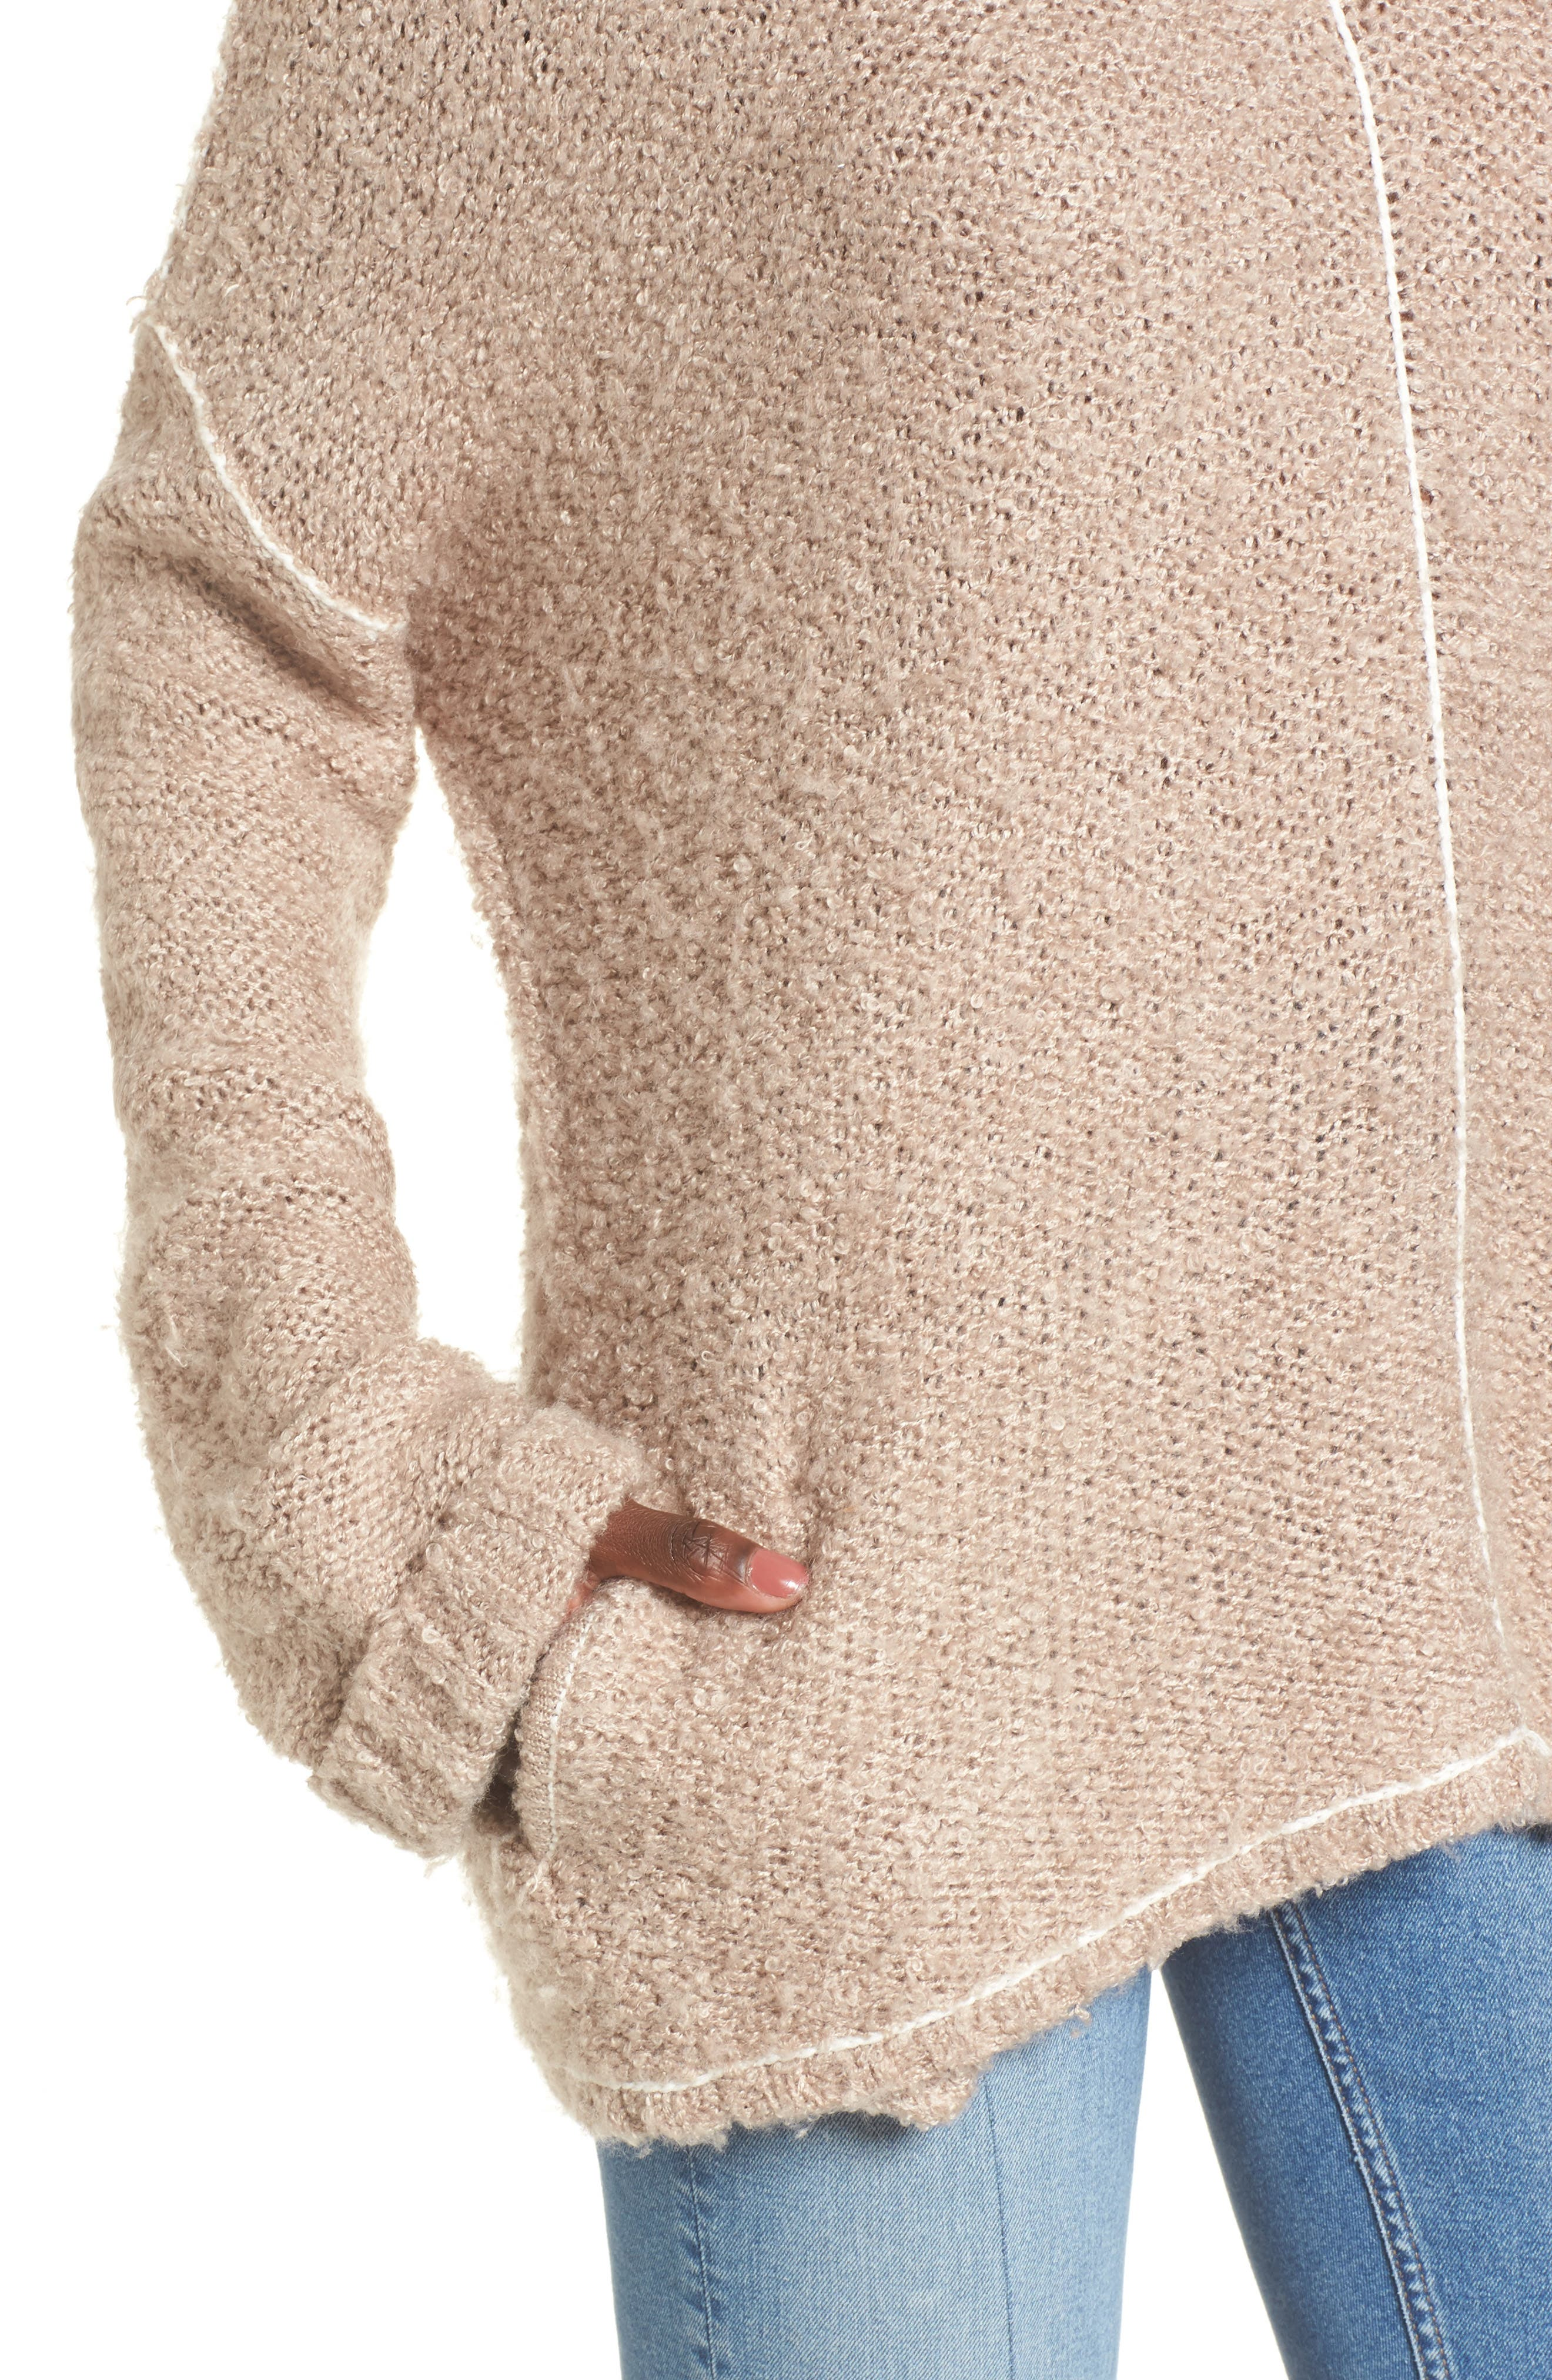 Voyage Knit Sweater,                             Alternate thumbnail 4, color,                             Mocha